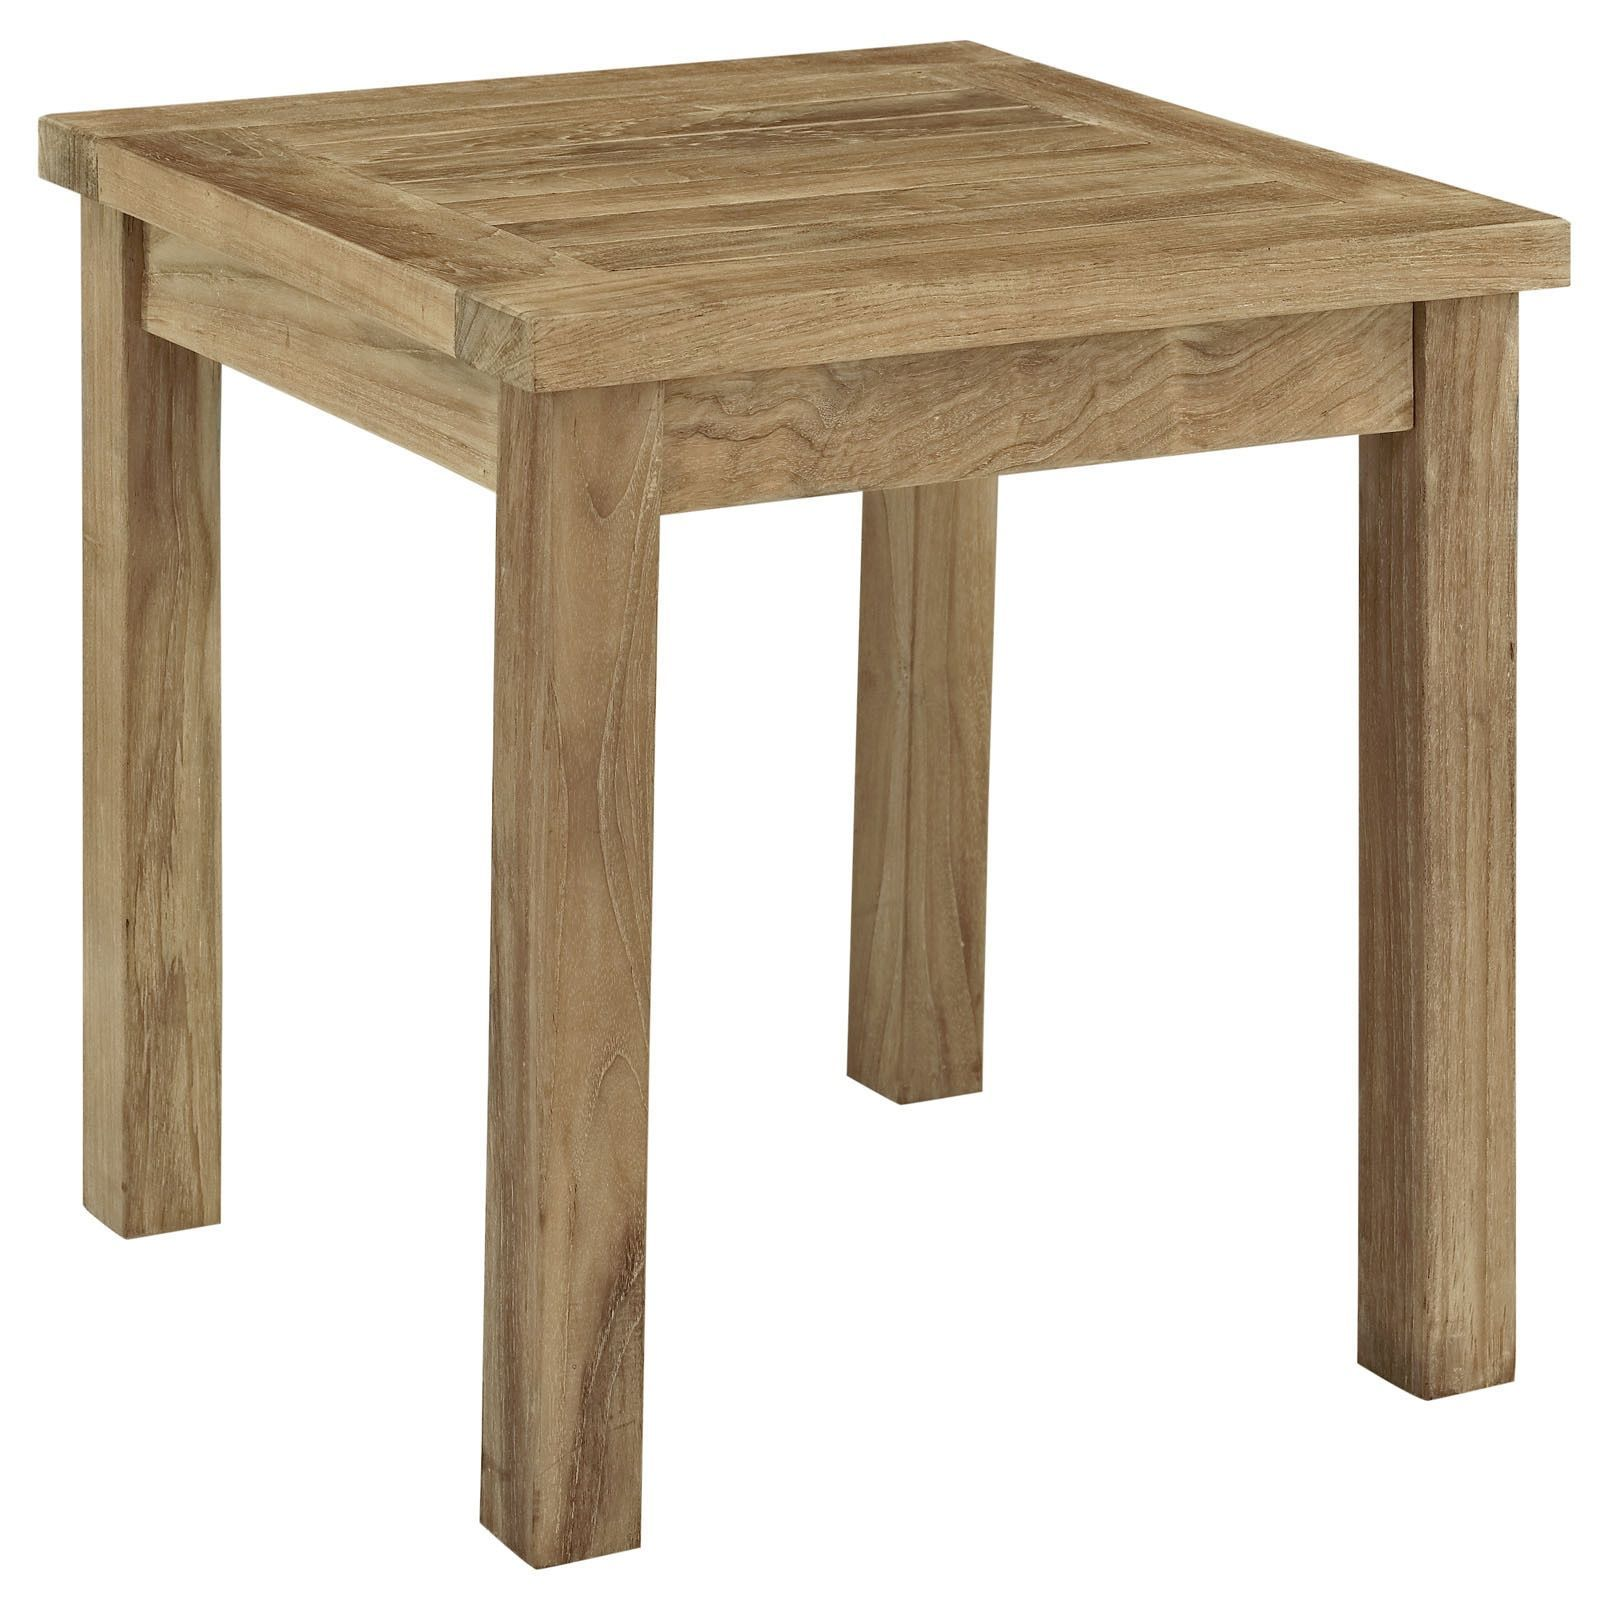 modway pier outdoor patio natural teak wood small side table accent furniture matching end tables lamp shades astoria dining contemporary design legs hourglass threshold cool